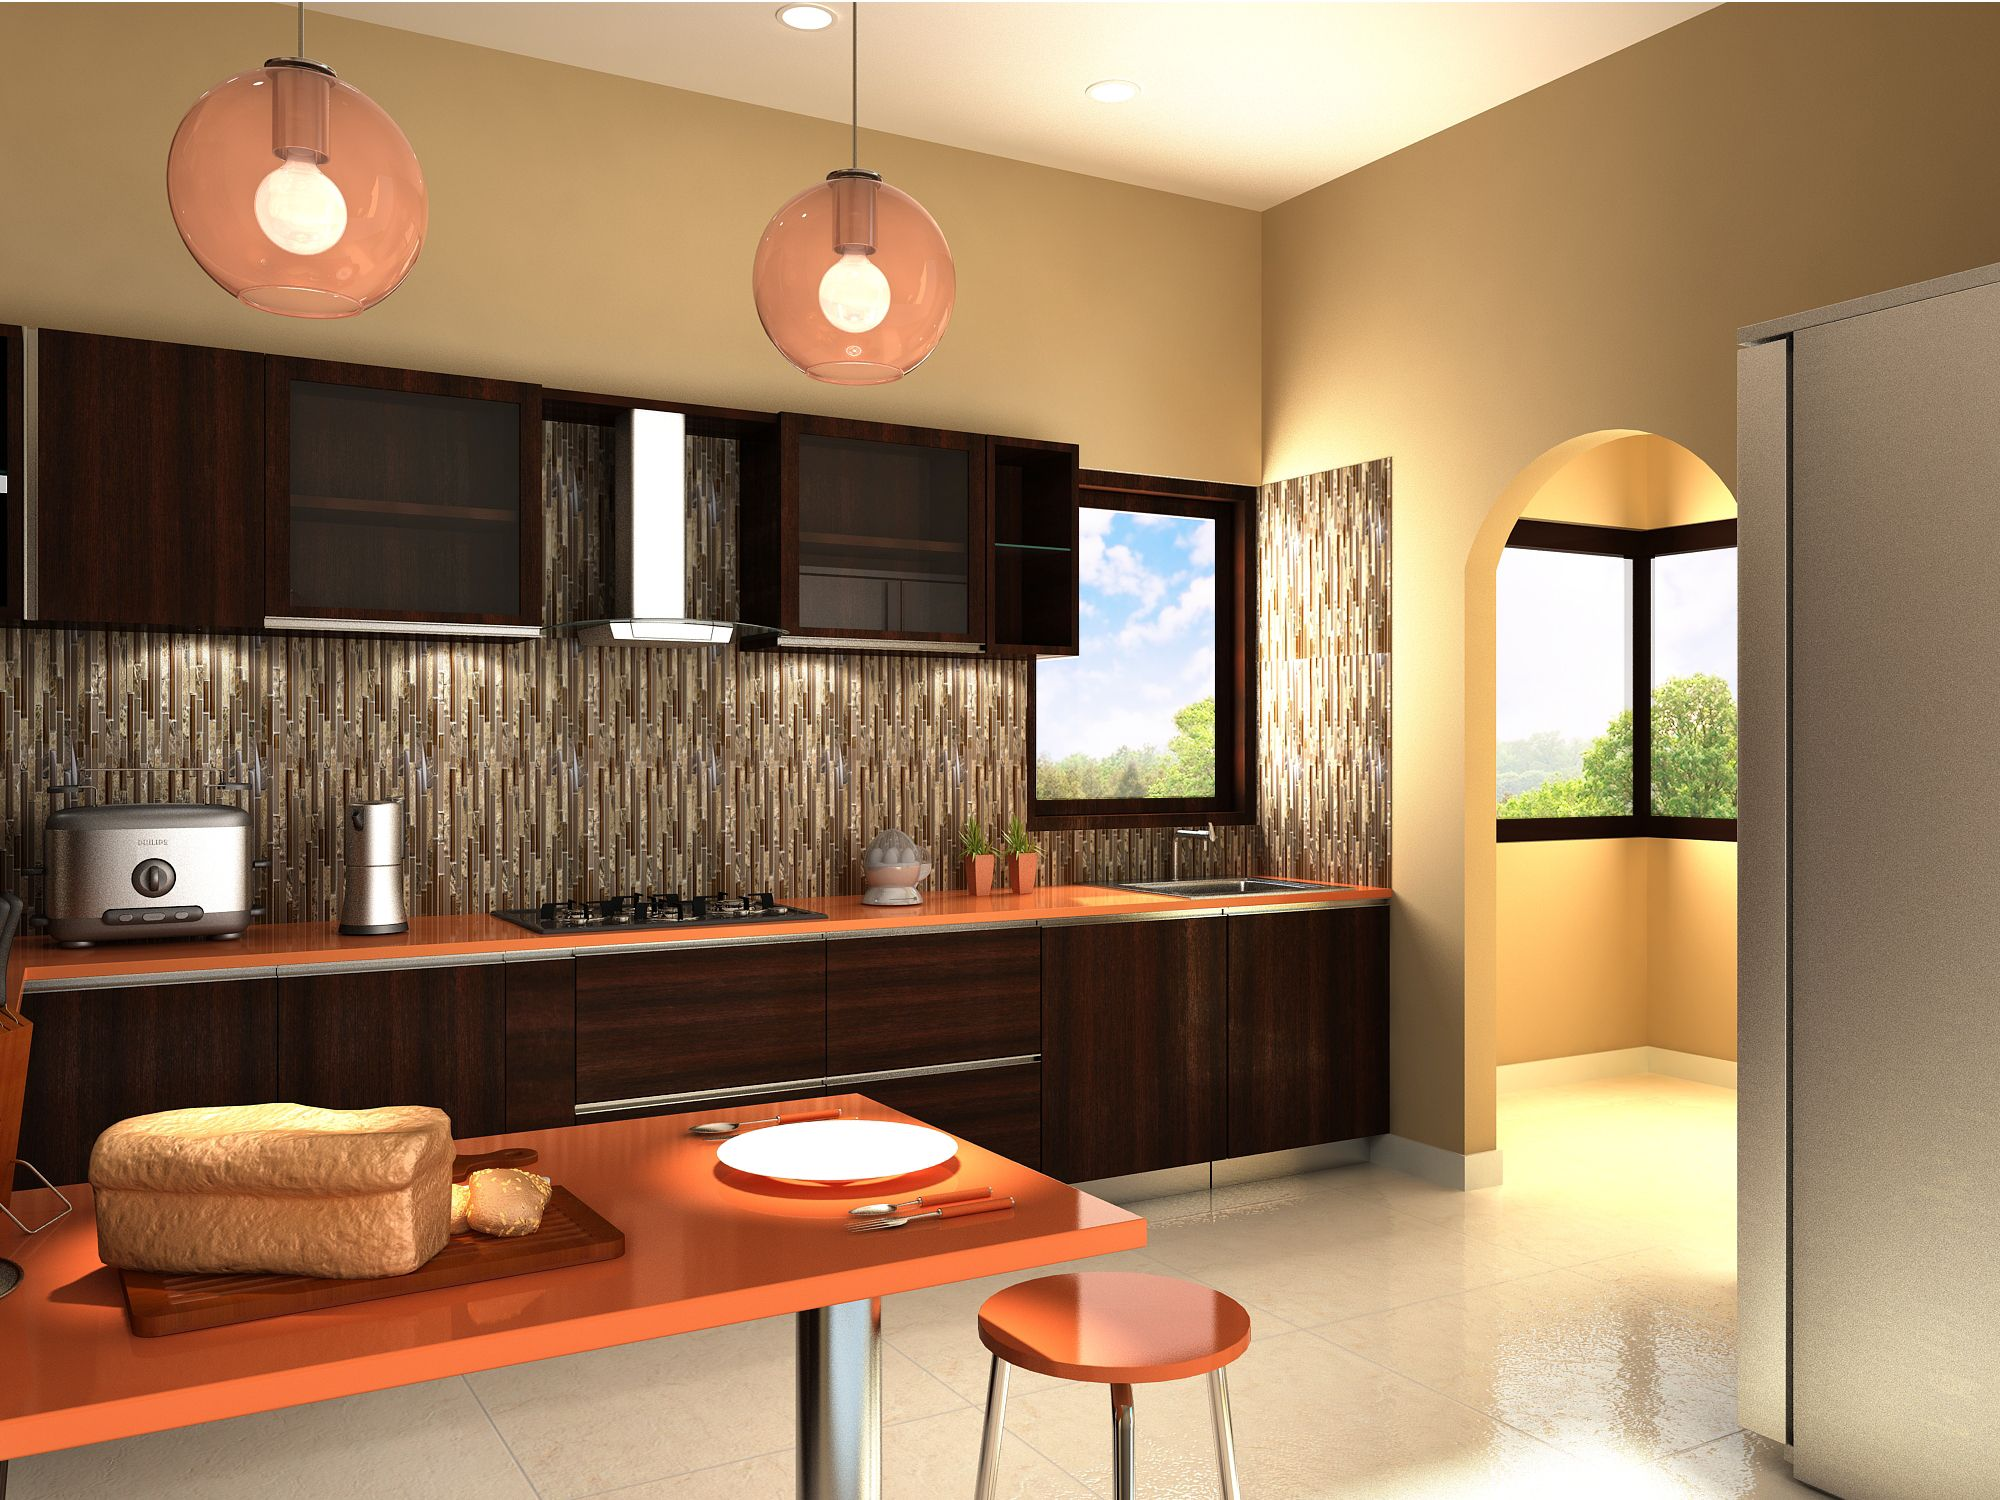 Interior design for our home - Girgit Is The Best Interior Designer In Bangalore They Come Up With The Different Interior Design To Your Home Just Look The Beautiful Kitchen Interior